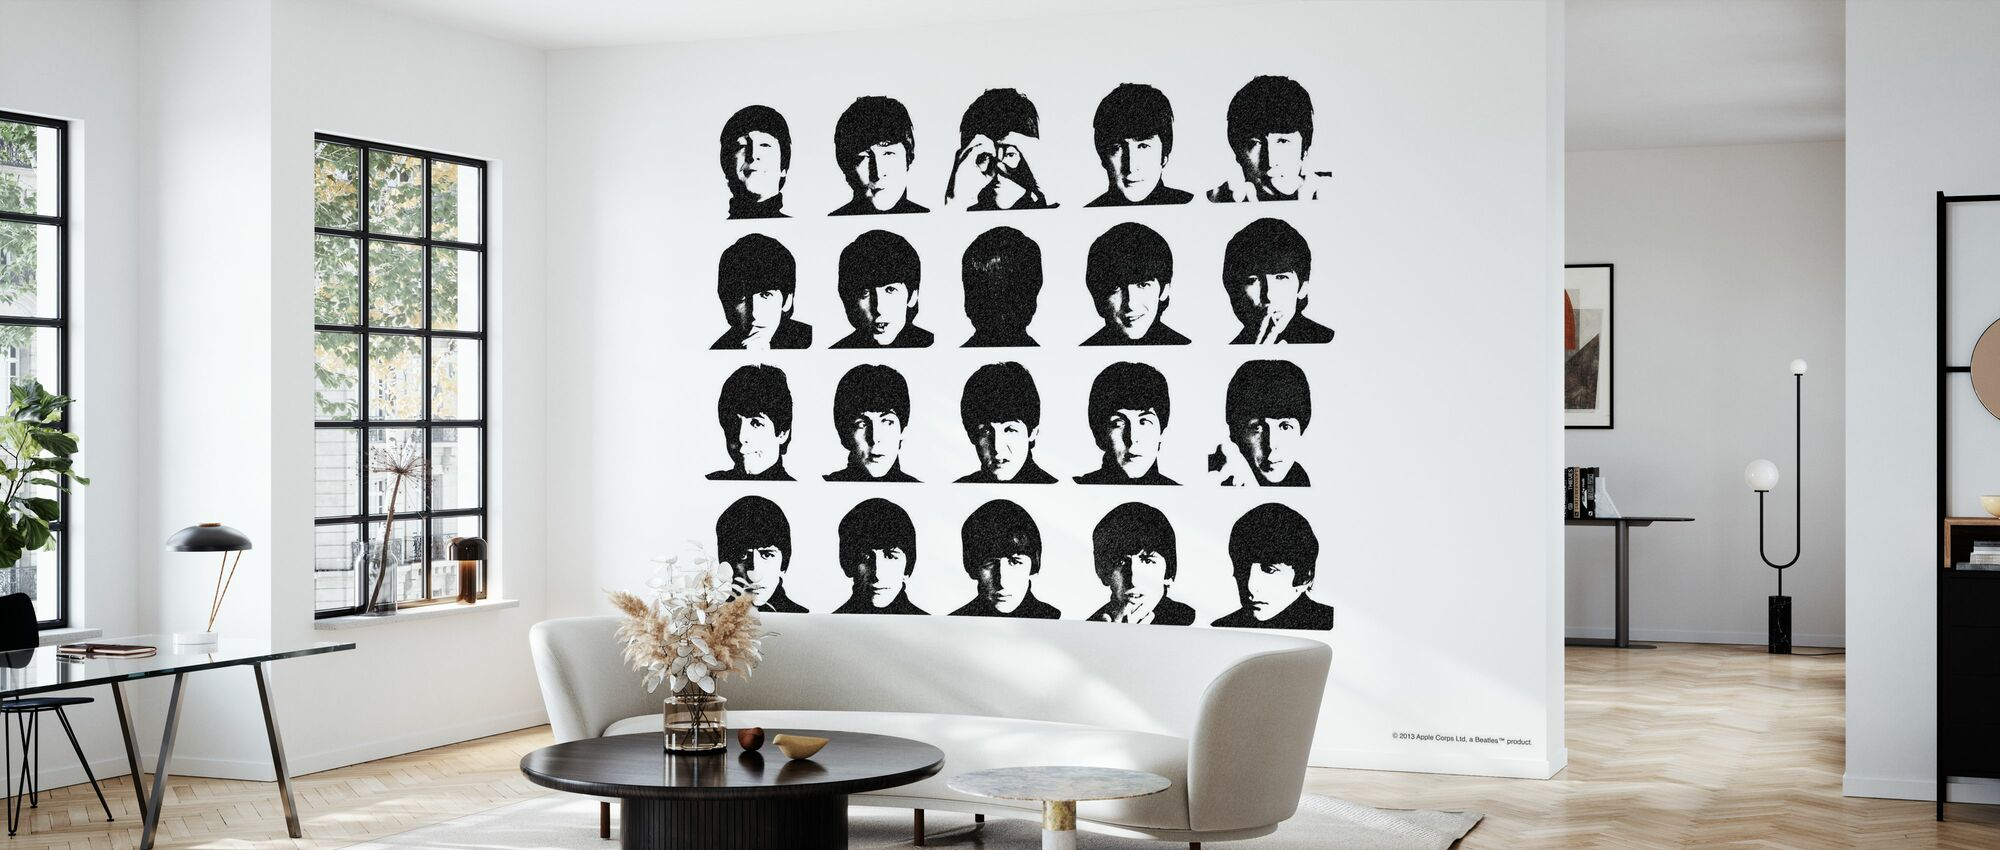 Beatles - Hard Days Night - Wallpaper - Living Room